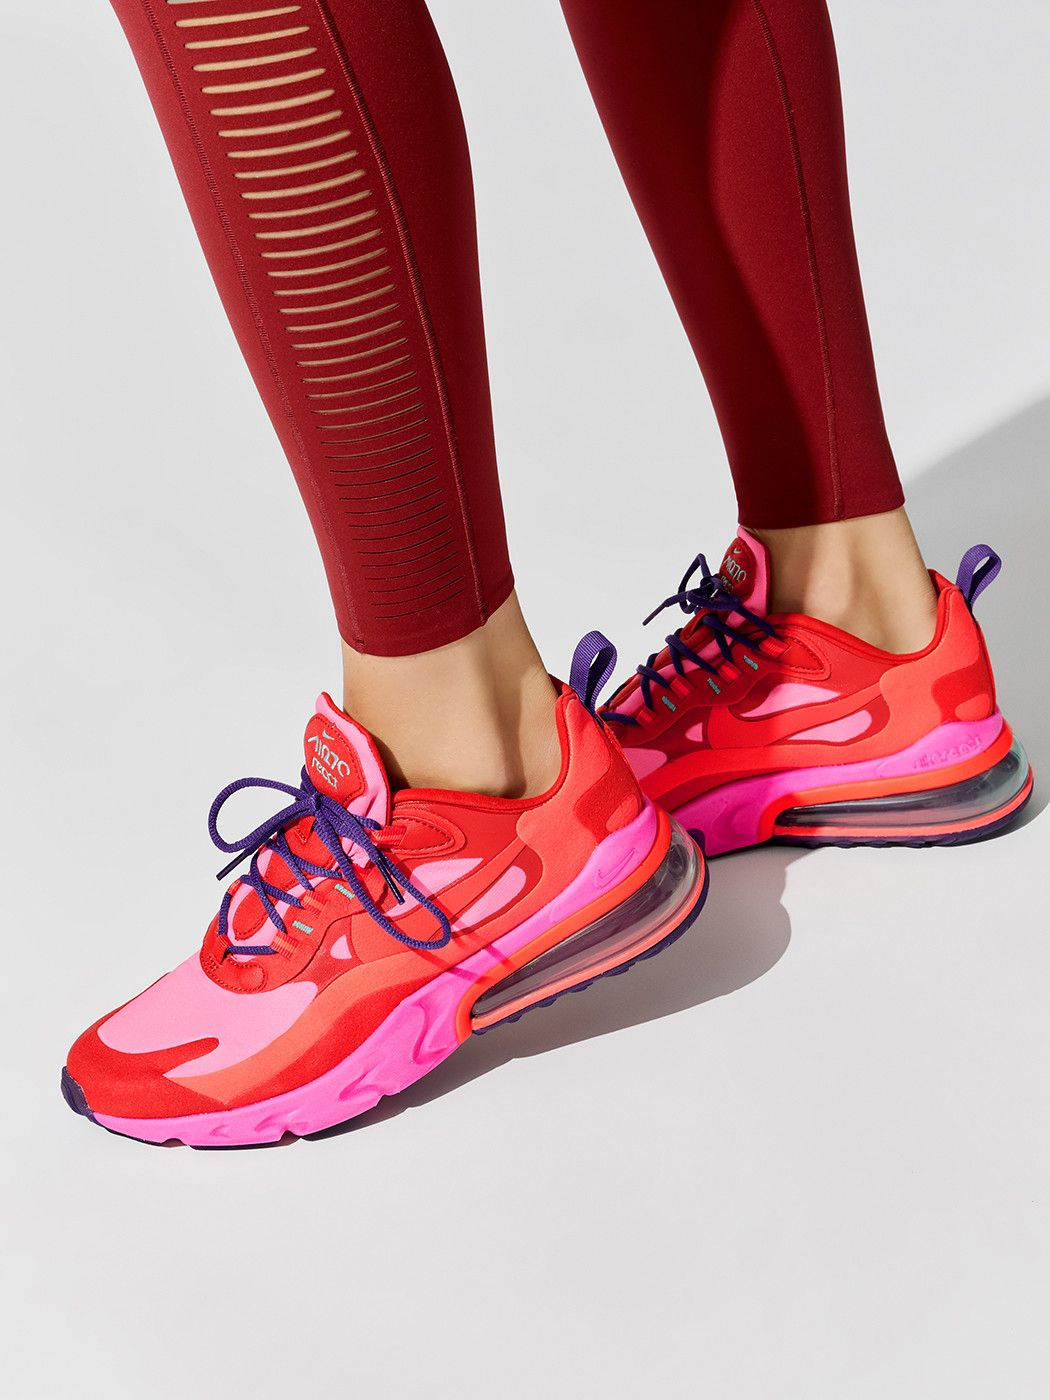 Nike Air Max 270 React In Mystic Red Brt Crimson Pink Blast